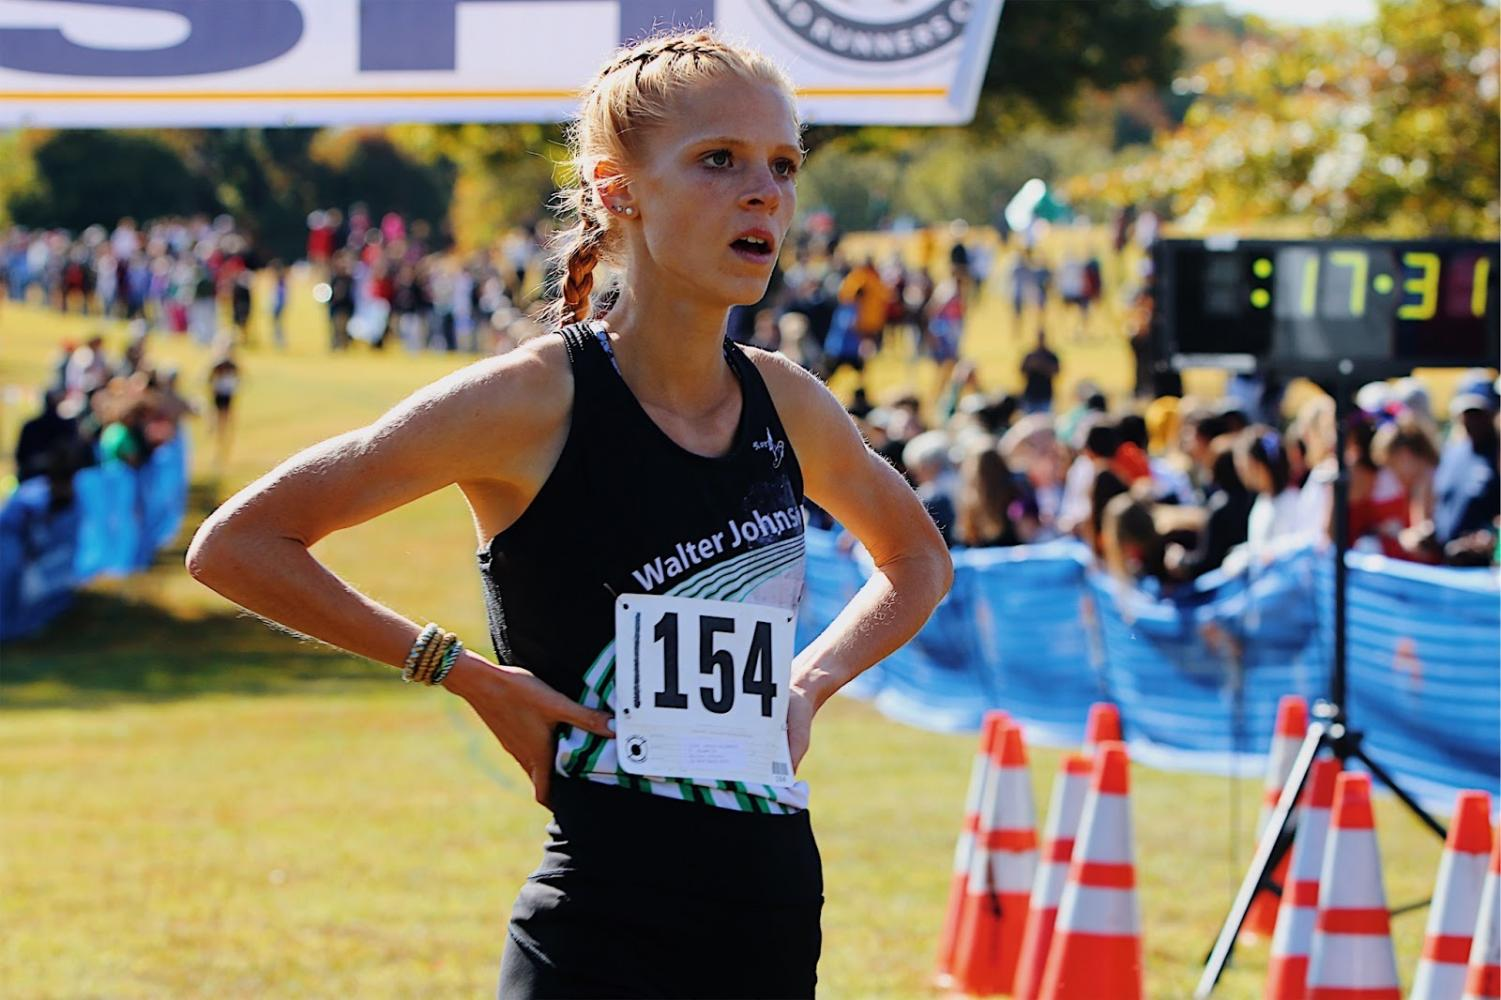 Senior Jenna Goldberg wins first place at the 2019 Great American XC Festival. Goldberg beat the course record with a time of 17 minutes and 28 seconds.